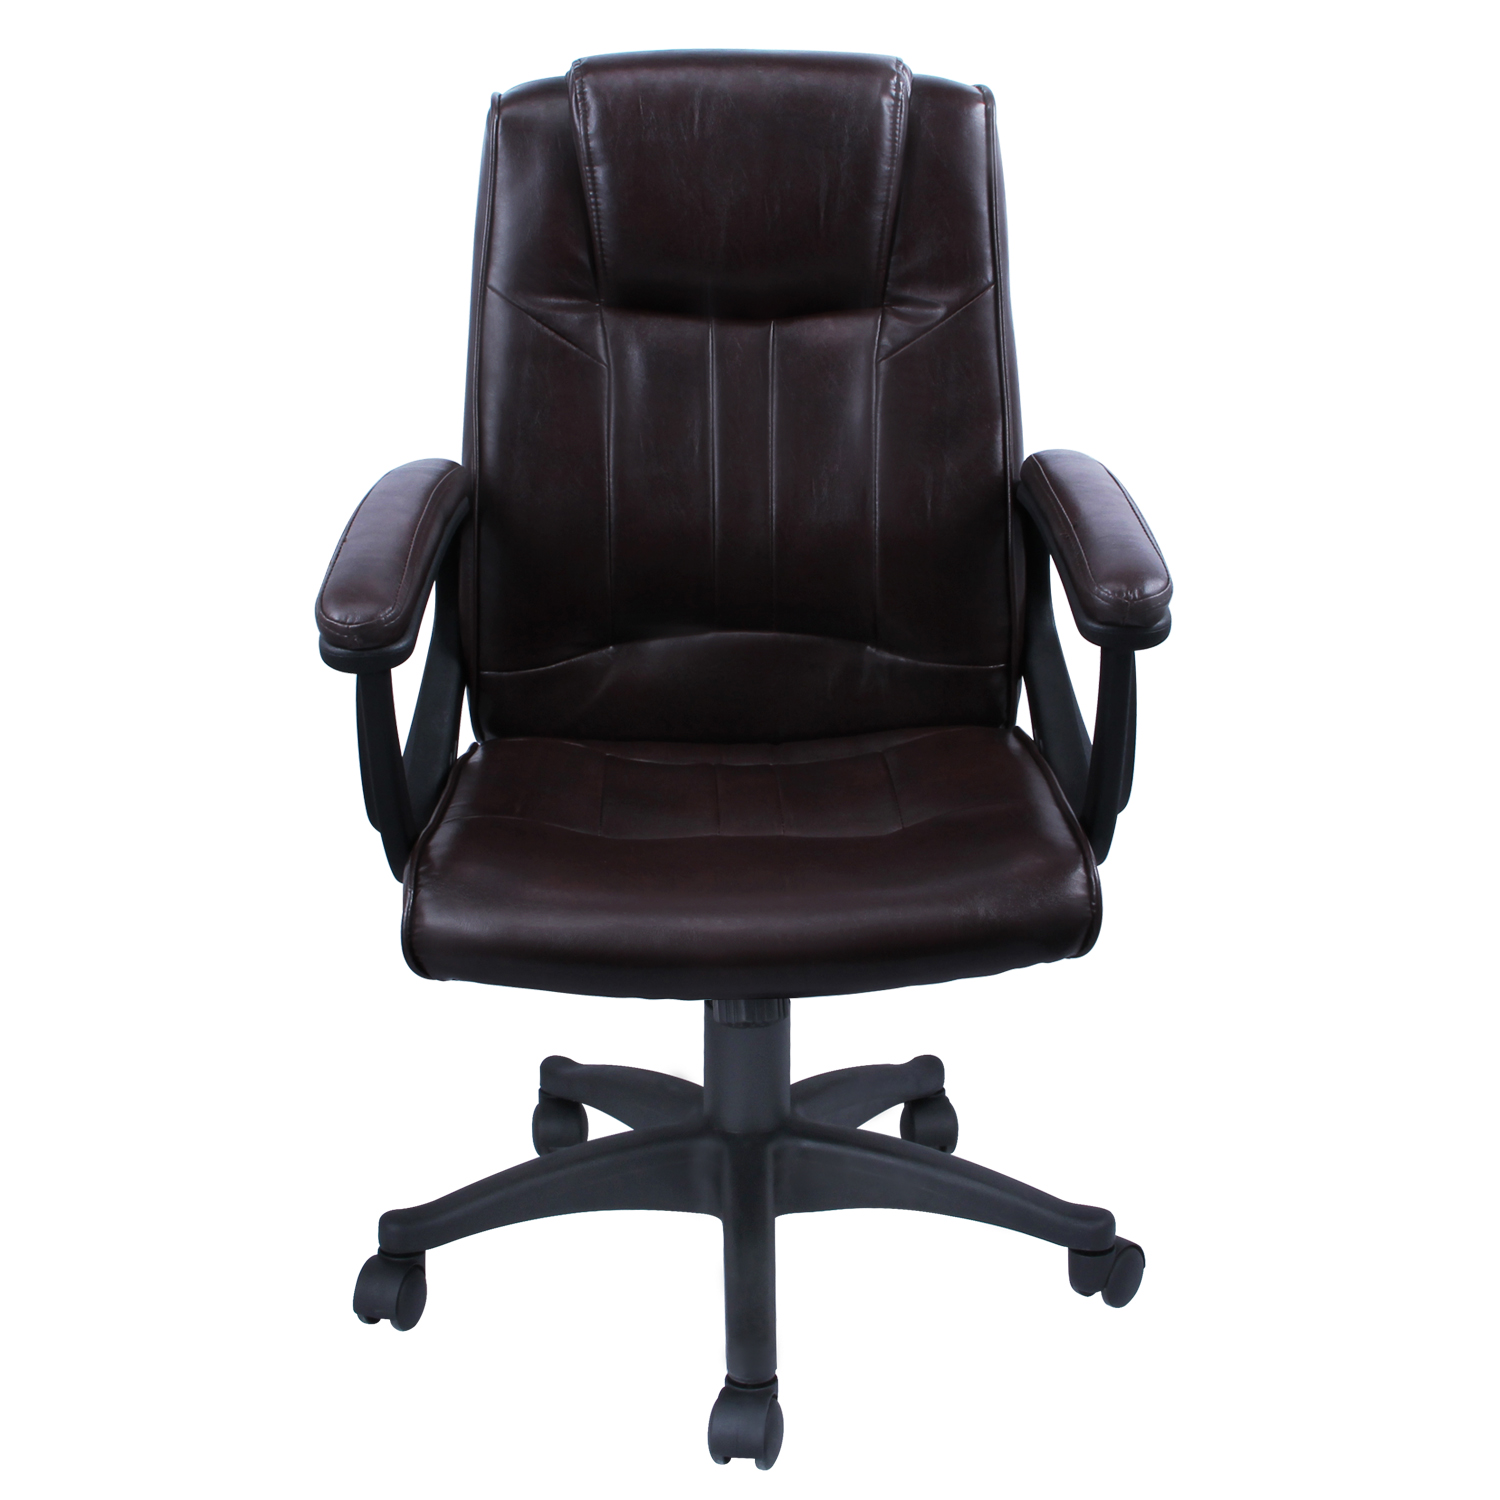 High Back Desk Chair High Back Pu Leather Executive Ergonomic Office Chair Desk